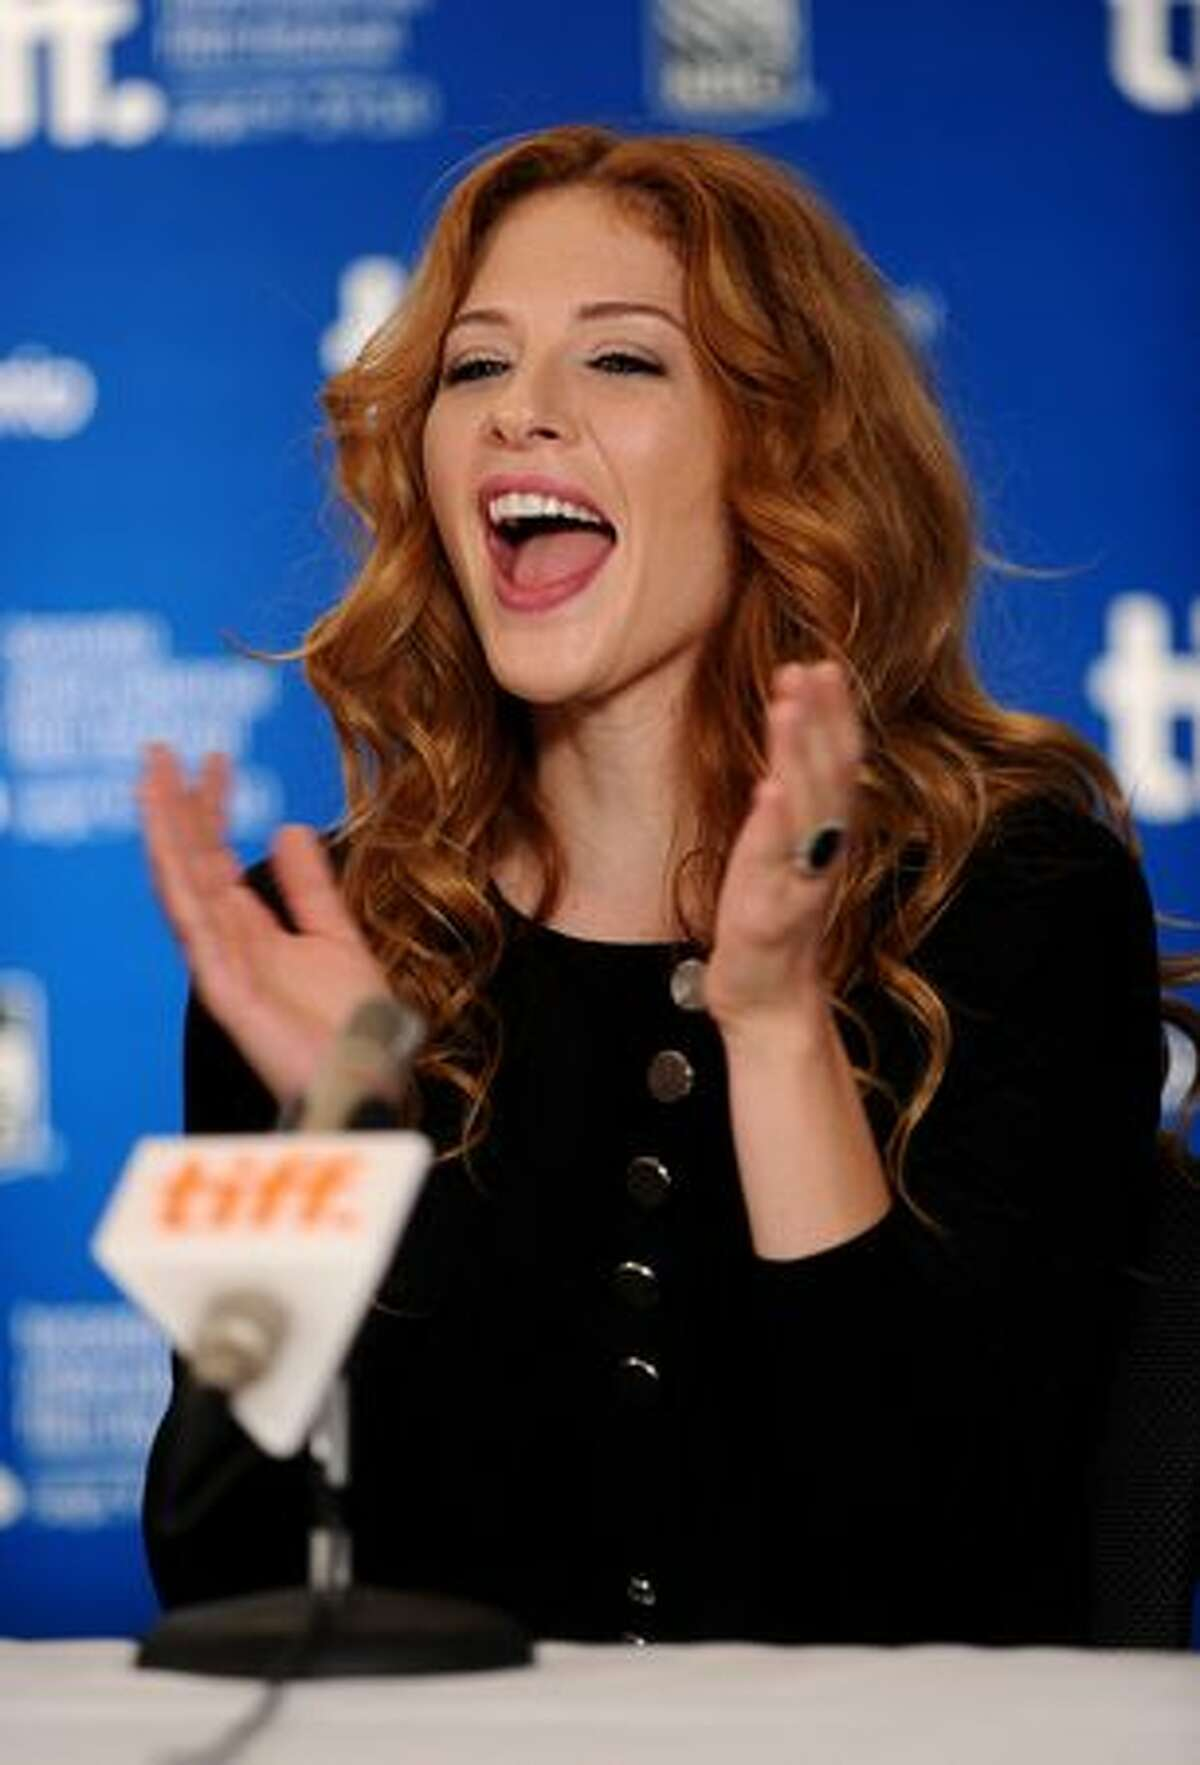 Actress Rachelle Lefevre speaks at